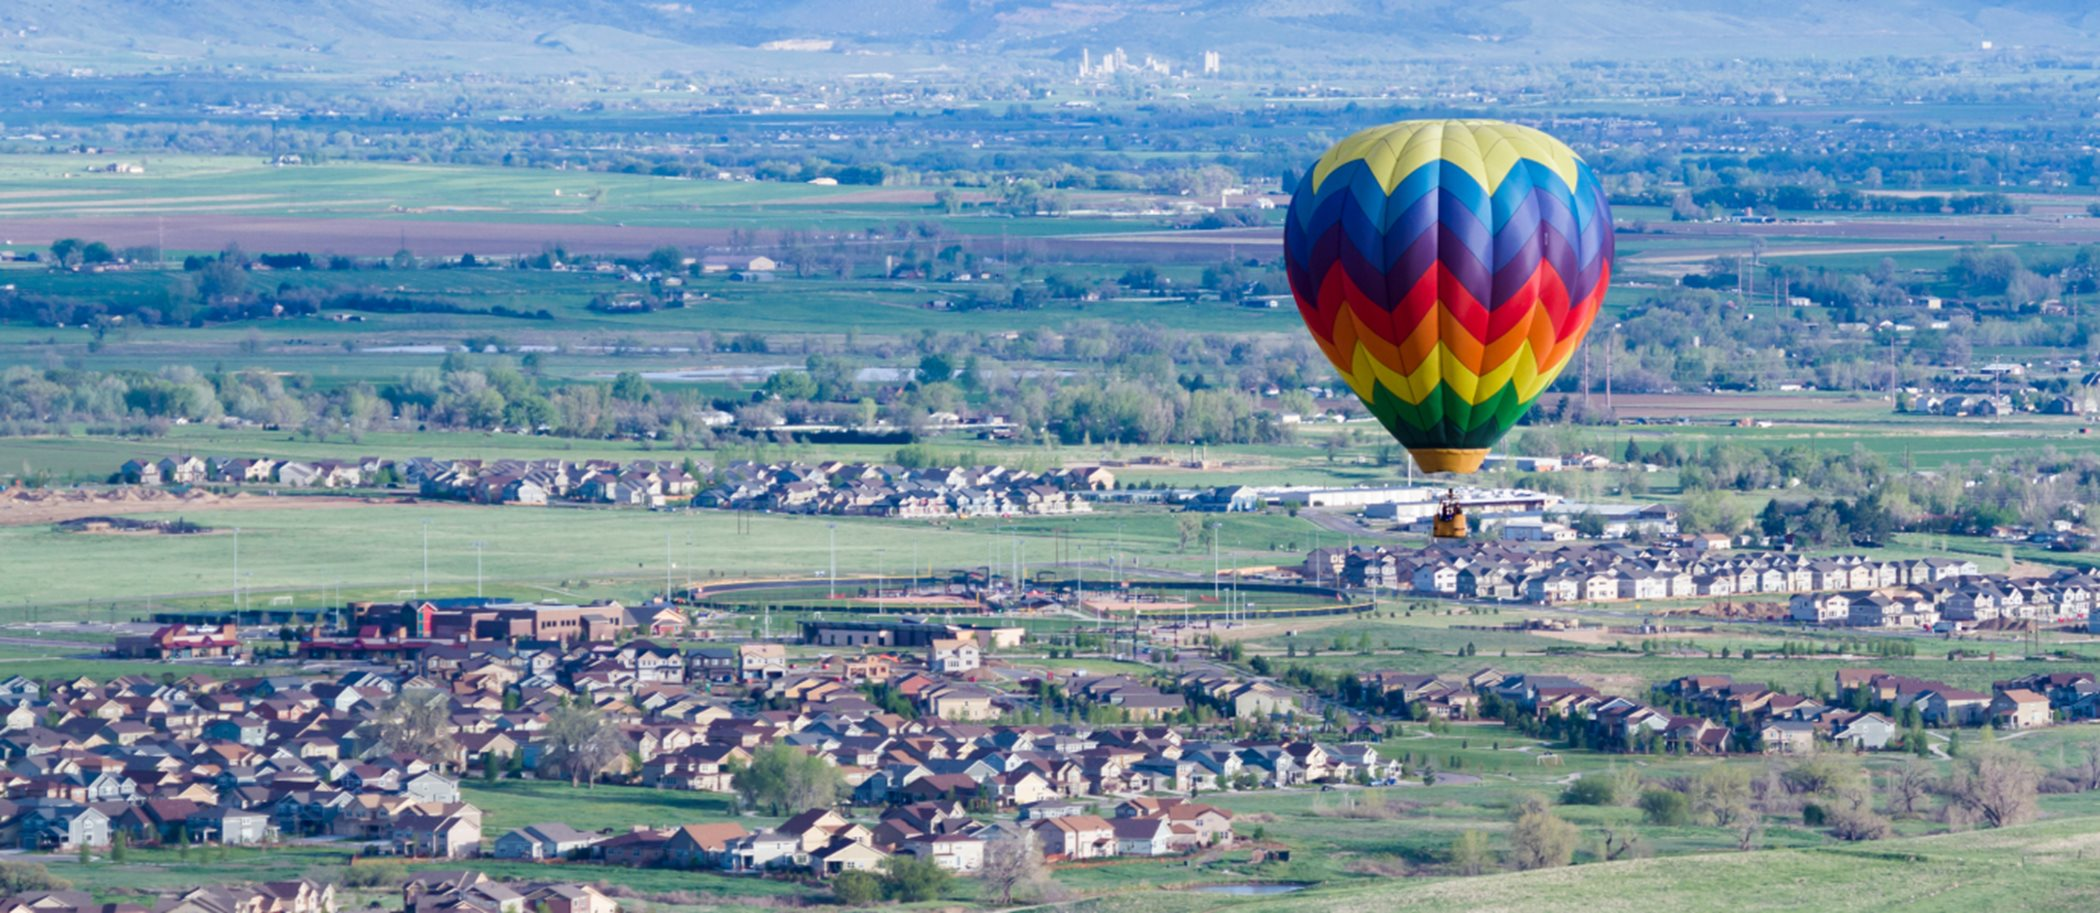 A hot air balloon flying over a town